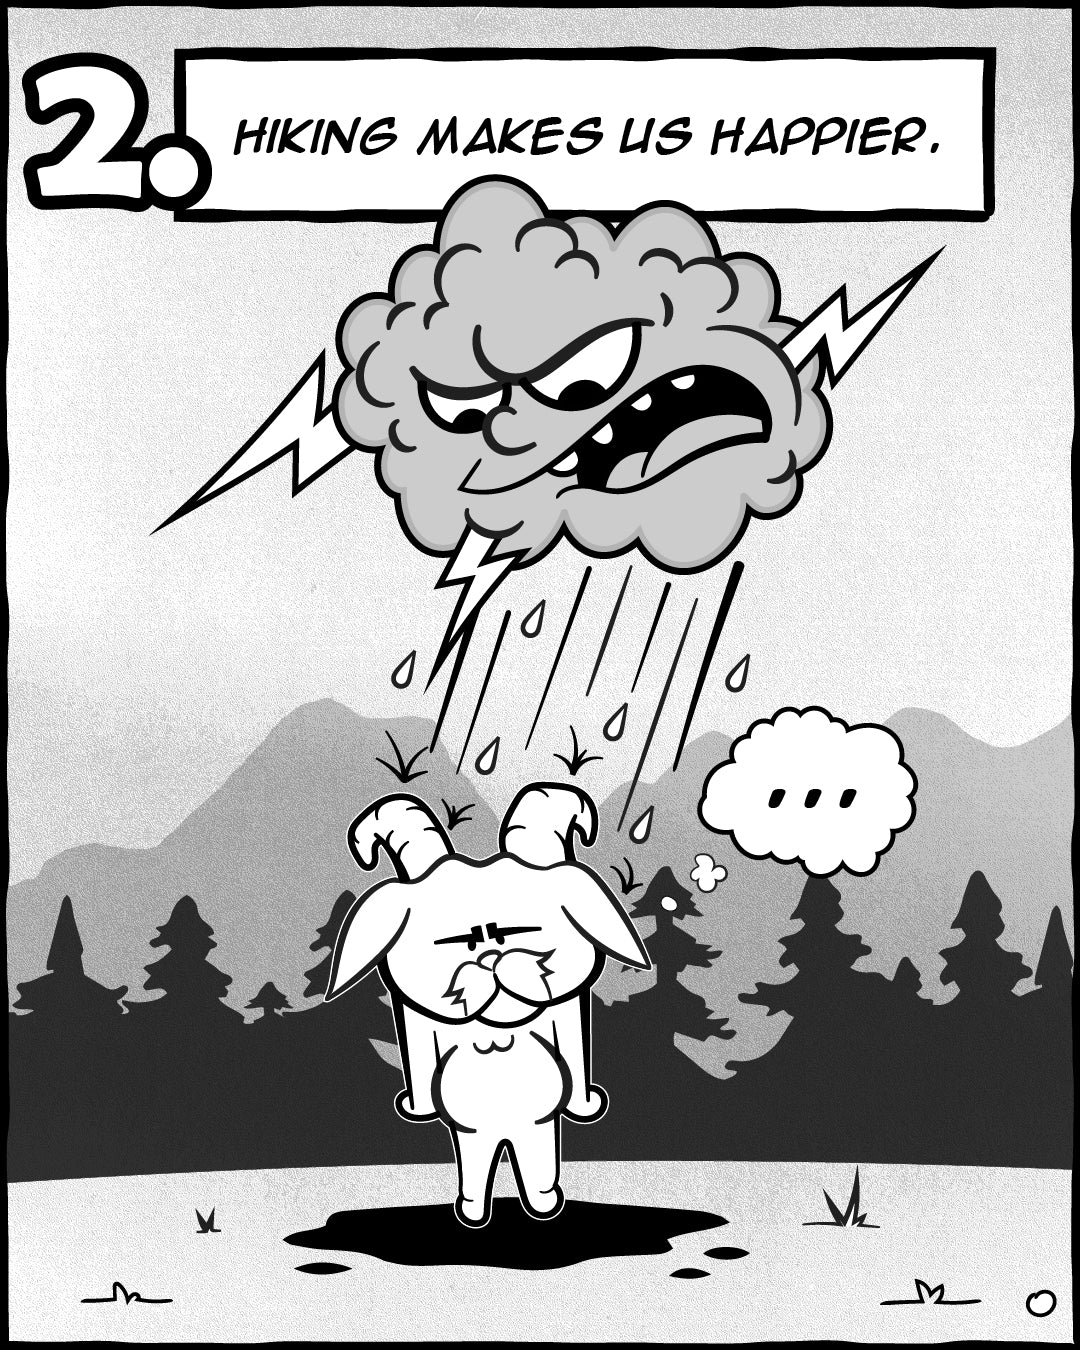 Hiking Makes Us Happier - 5 Reasons Hiking Is Good For Your Soul, The Adventures Of Lambert Comic Series   TRVRS Outdoors